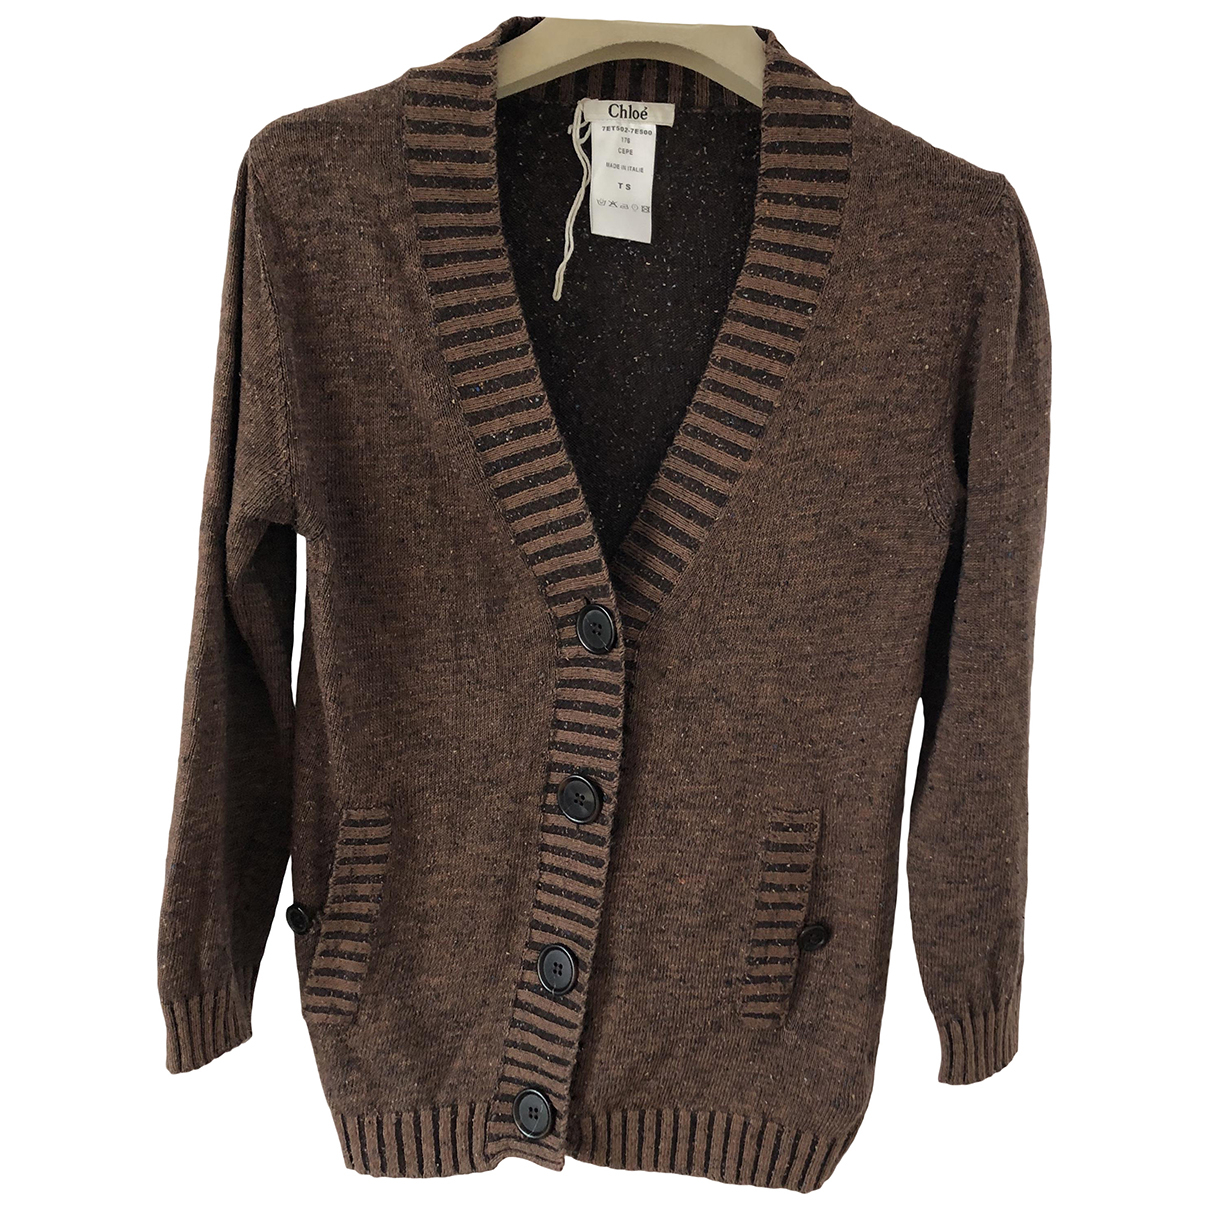 Chloé N Brown Cotton Knitwear for Women S International